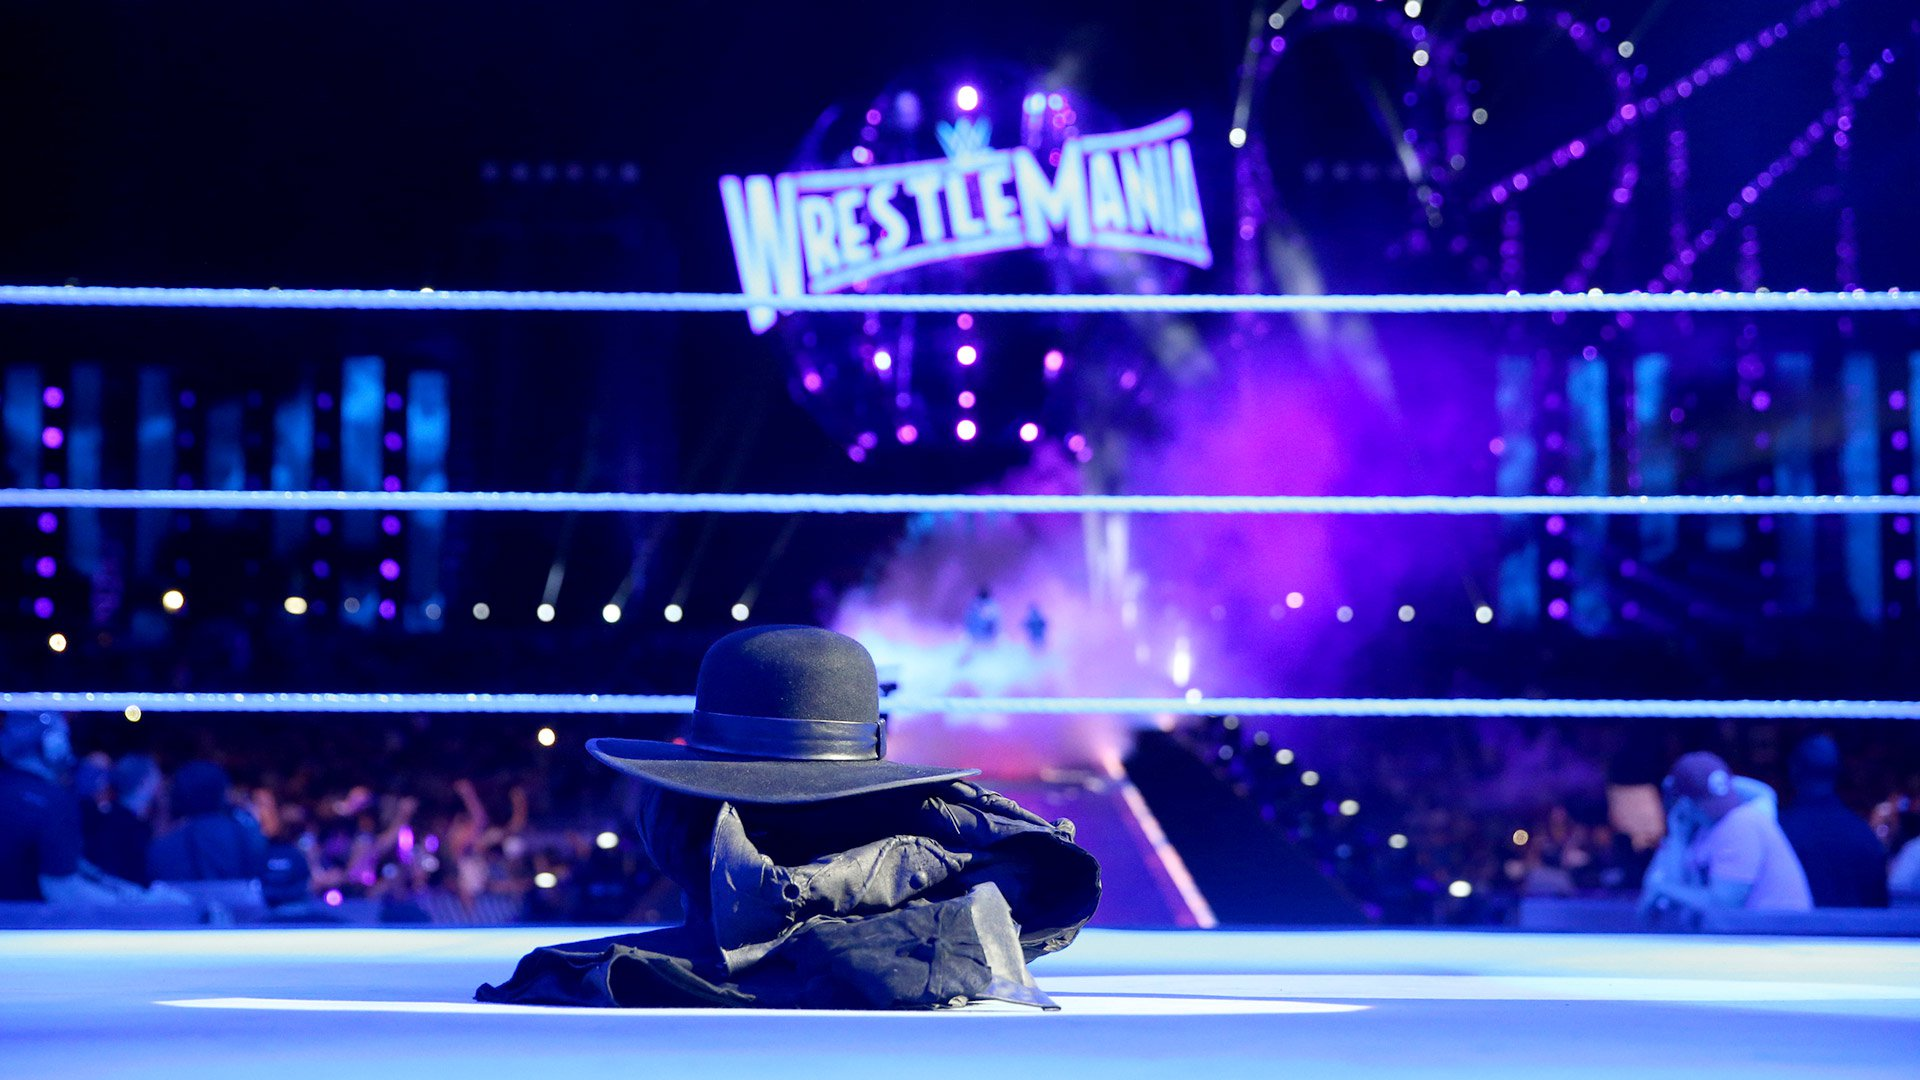 [WrestleMania SPOILERS] A Great Photo For A Desktop